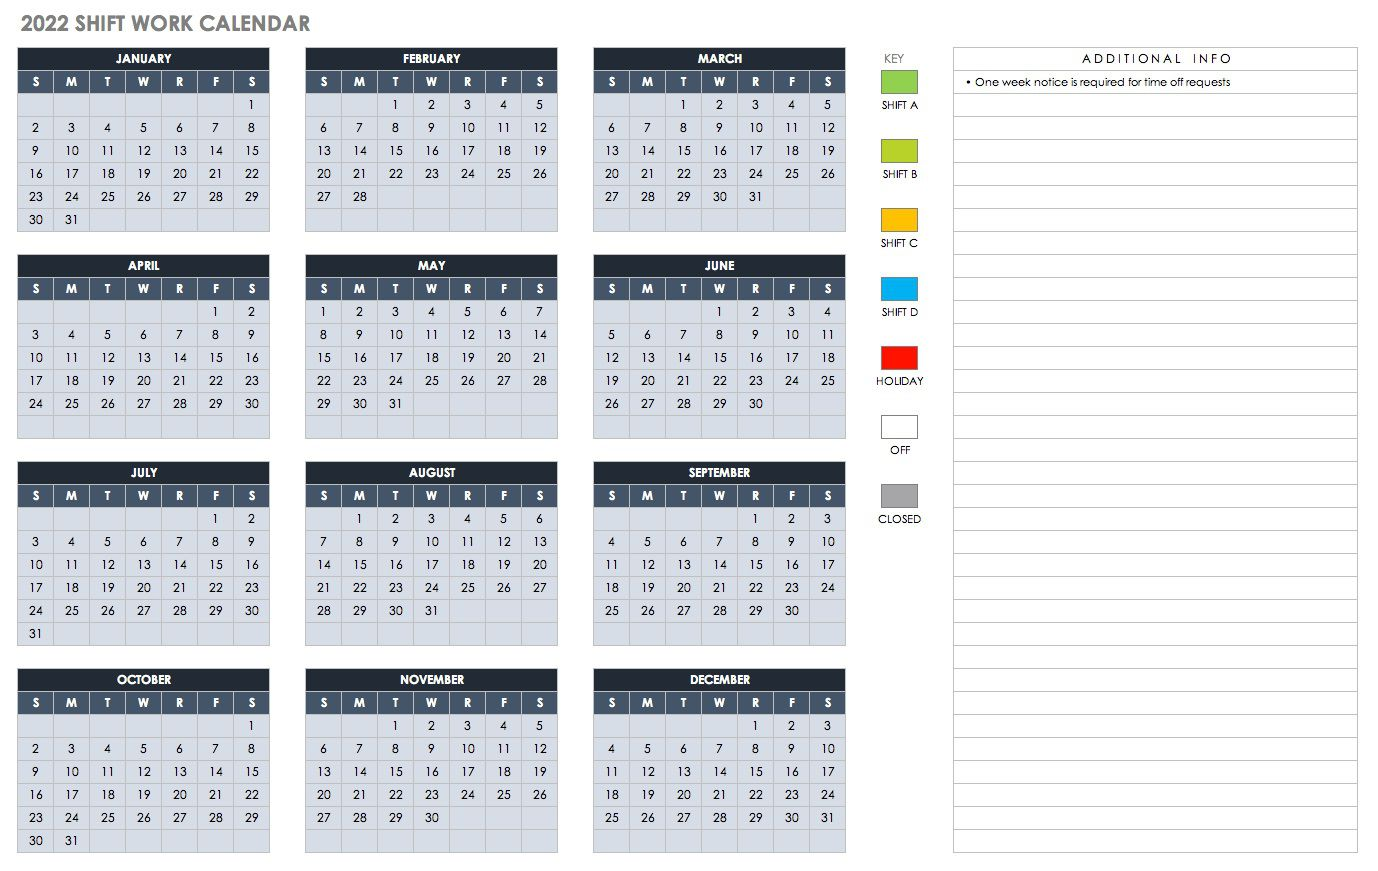 008 Archaicawful 2020 Yearly Calendar Template Image  Word UkFull